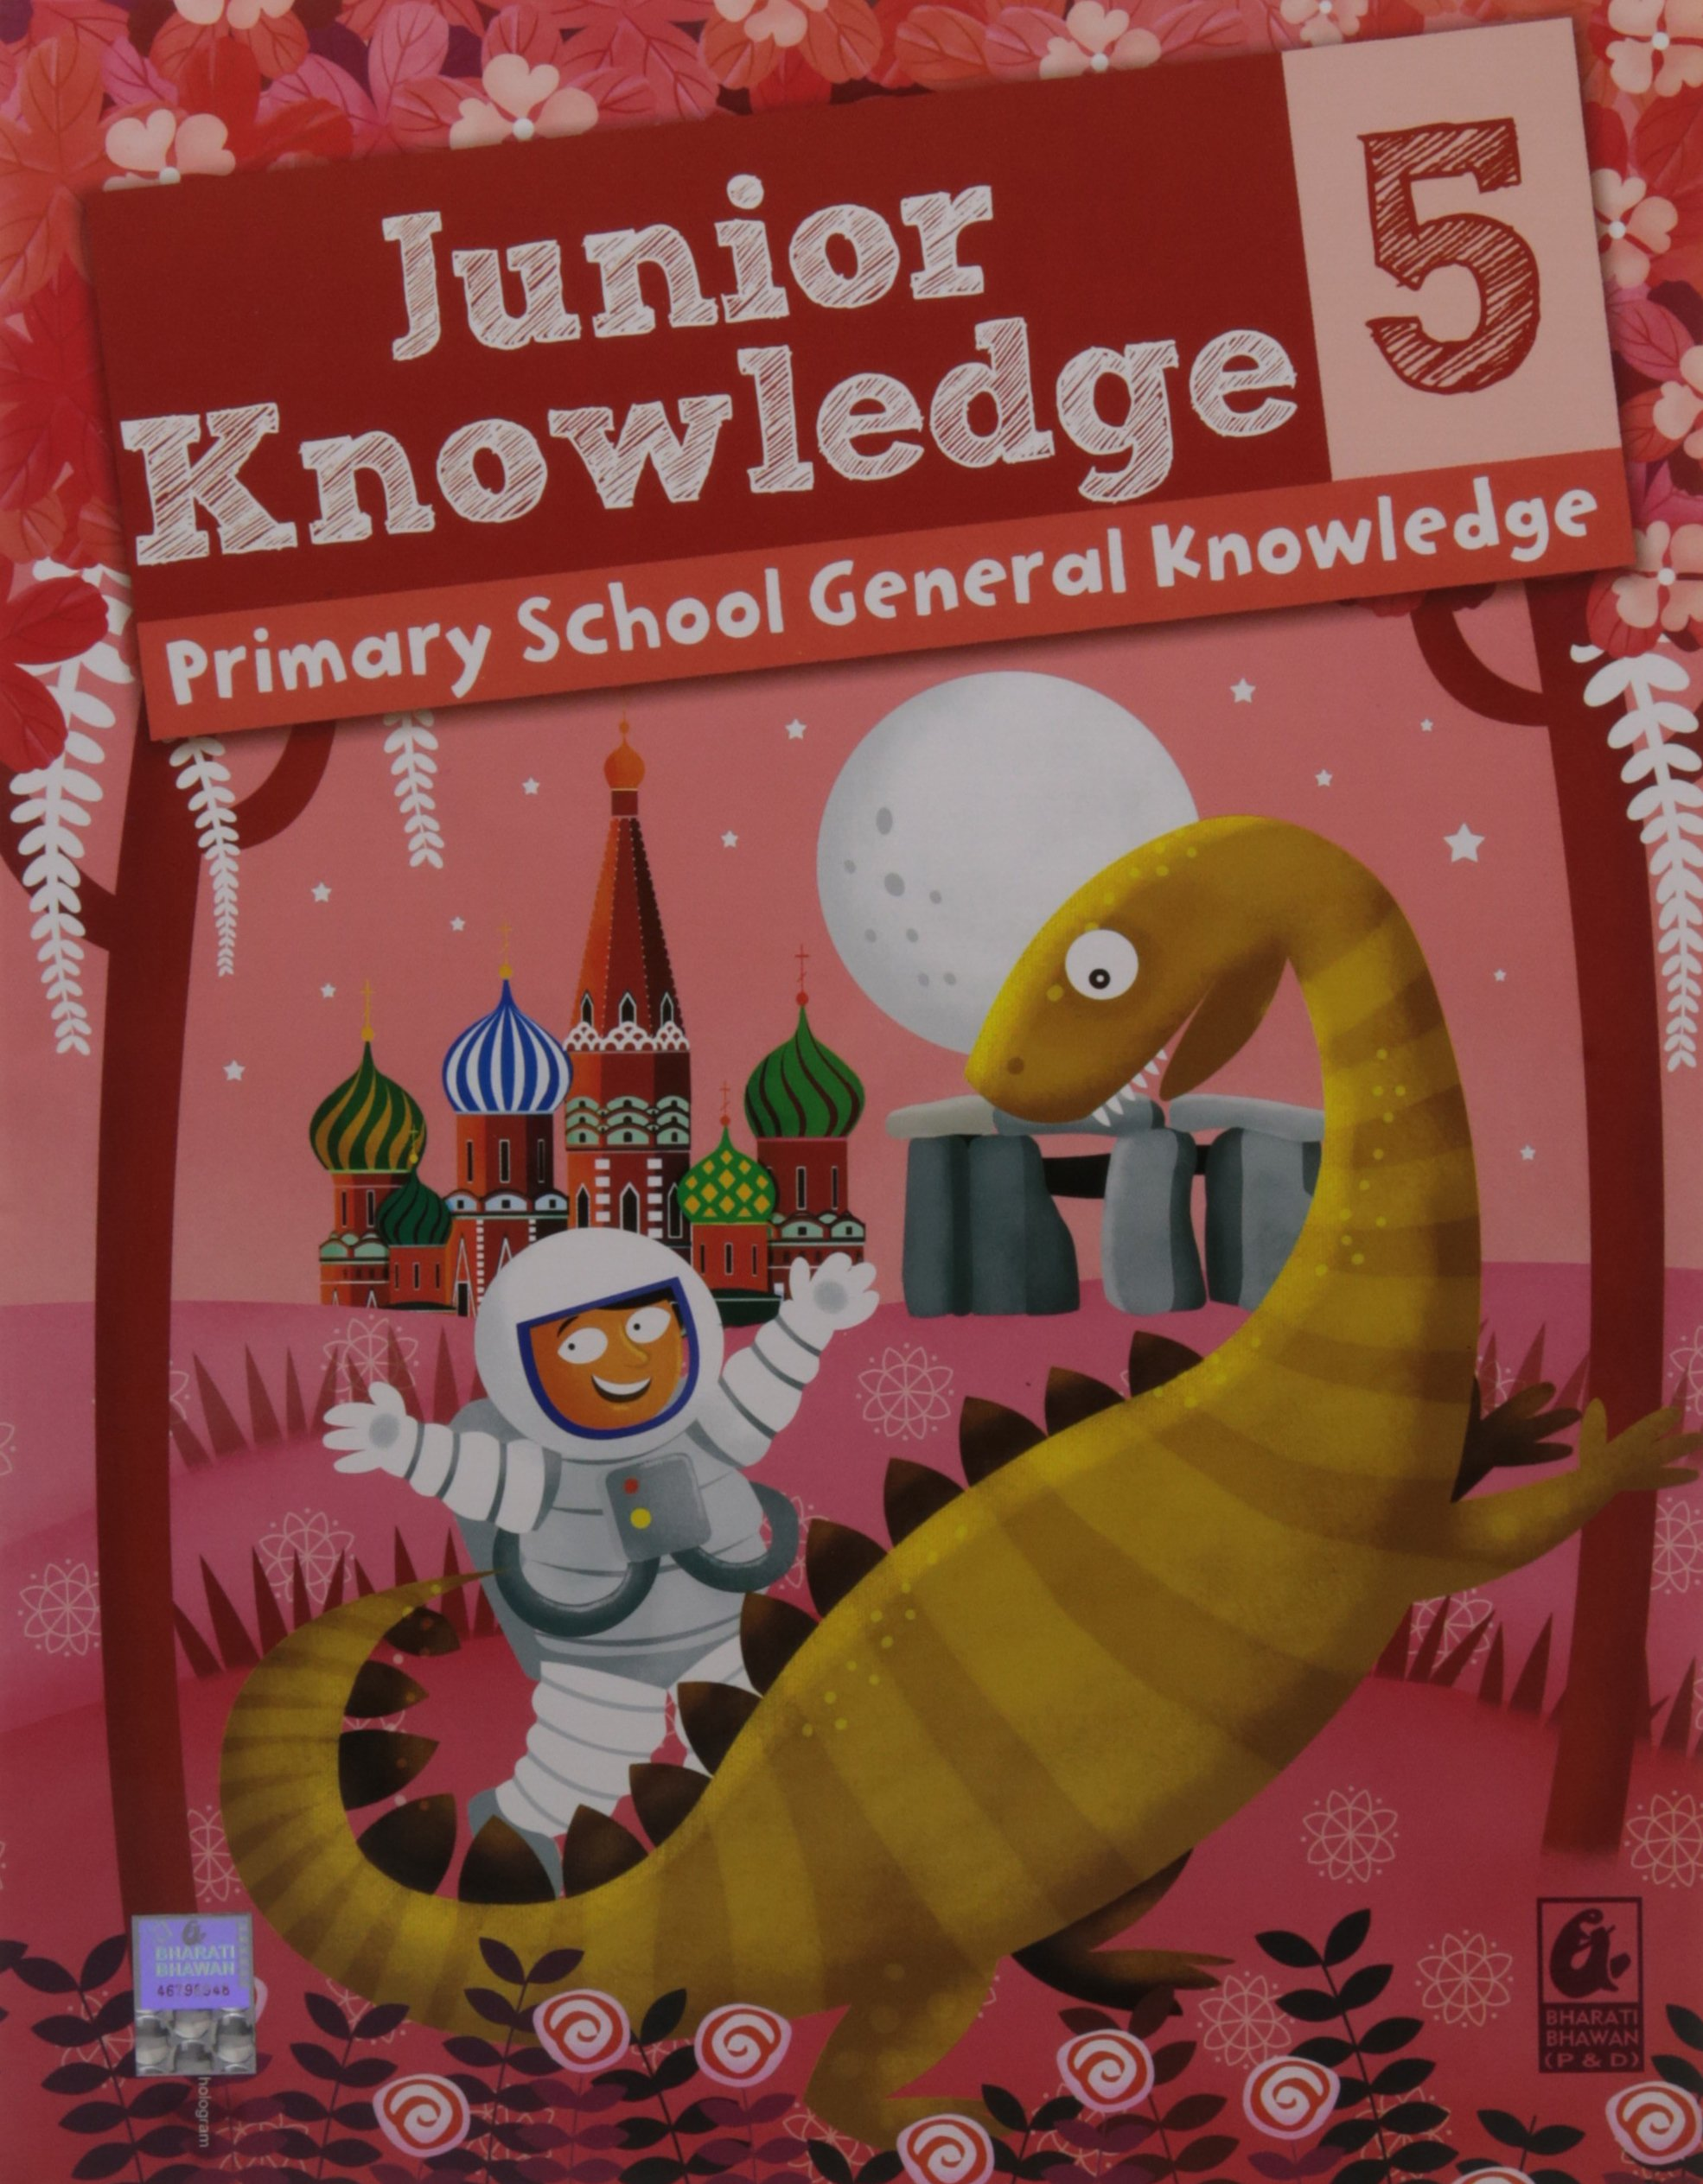 Junior knowledge 5 amazon bharati bhawan books altavistaventures Gallery